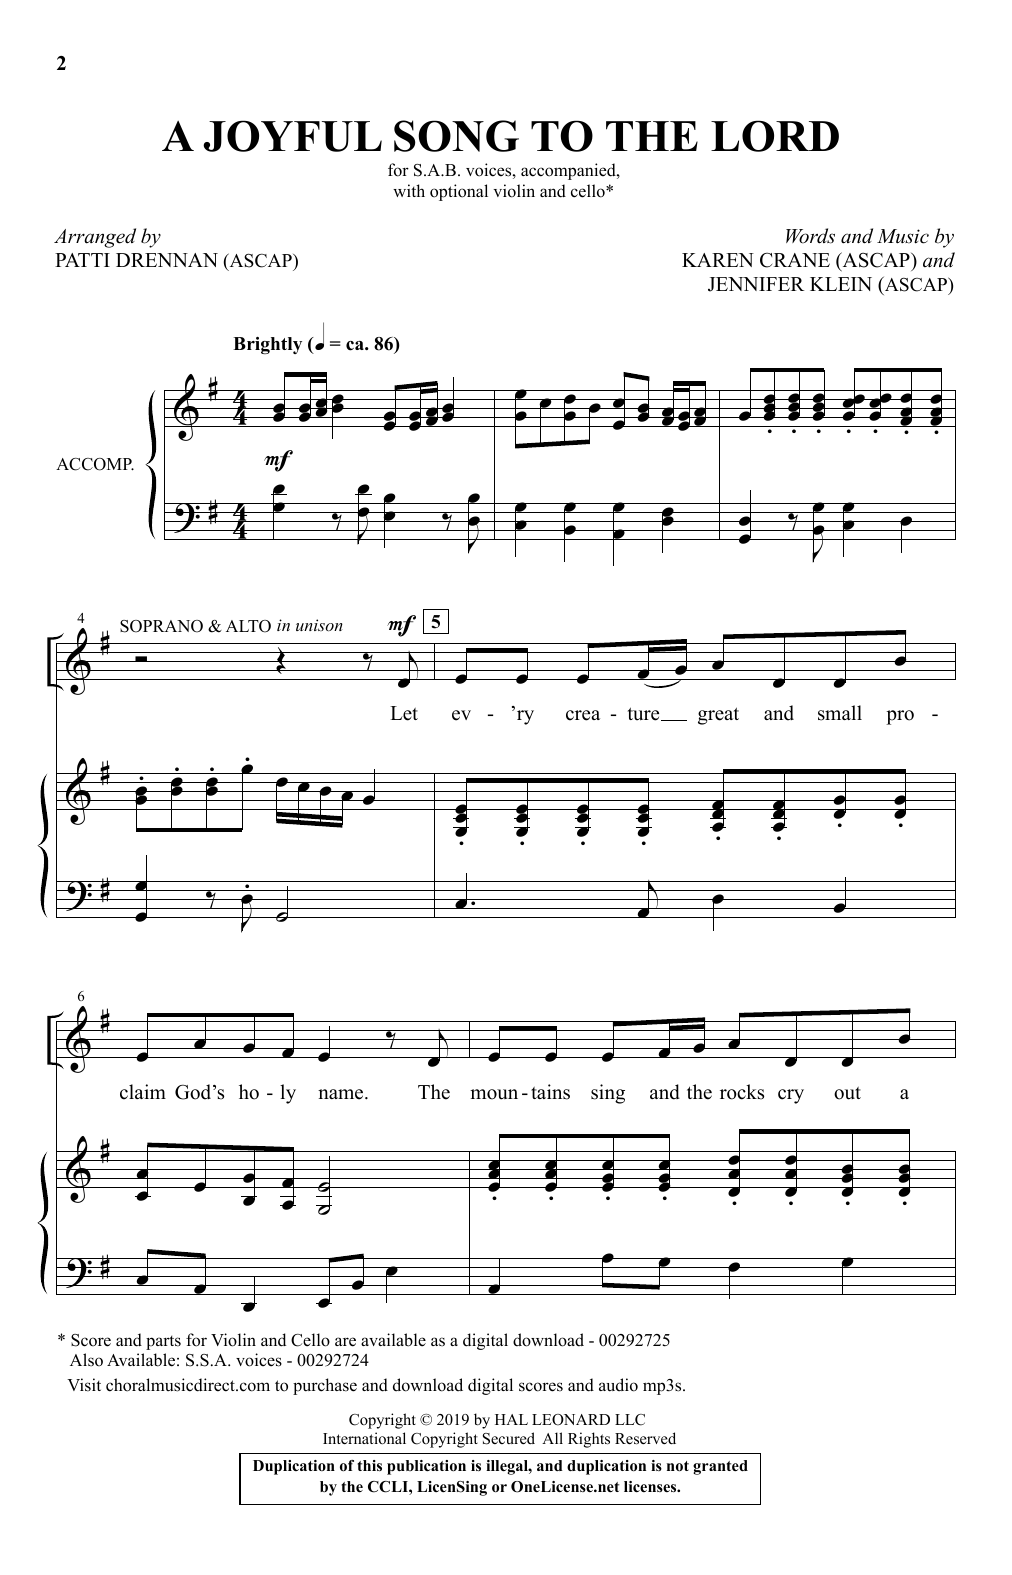 A Joyful Song To The Lord (arr. Patti Drennan) Partition Digitale